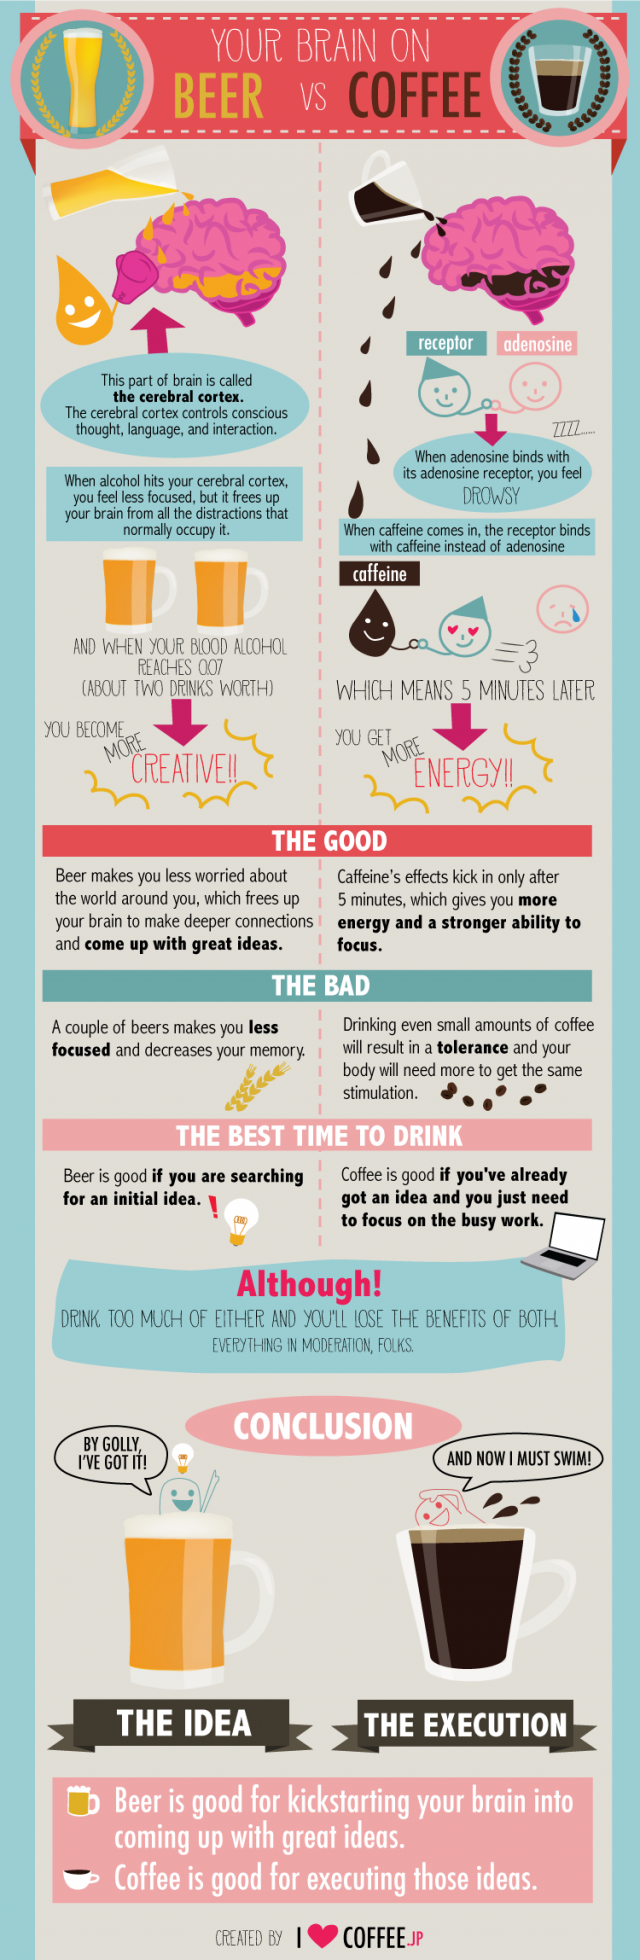 how brain works on beer and coffee